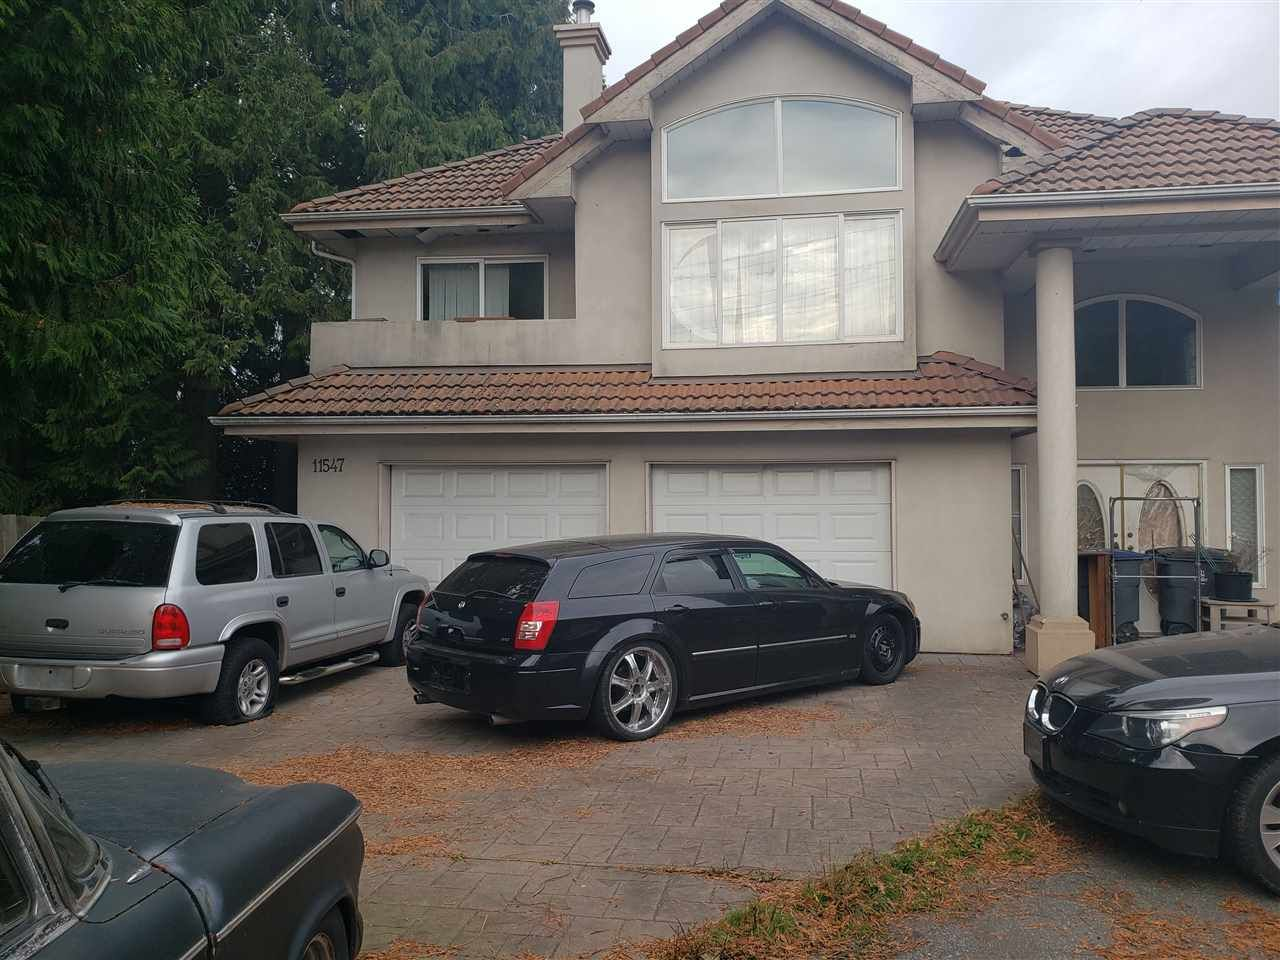 """Main Photo: 11547 96 Avenue in Surrey: Royal Heights House for sale in """"Royal Heights"""" (North Surrey)  : MLS®# R2419164"""